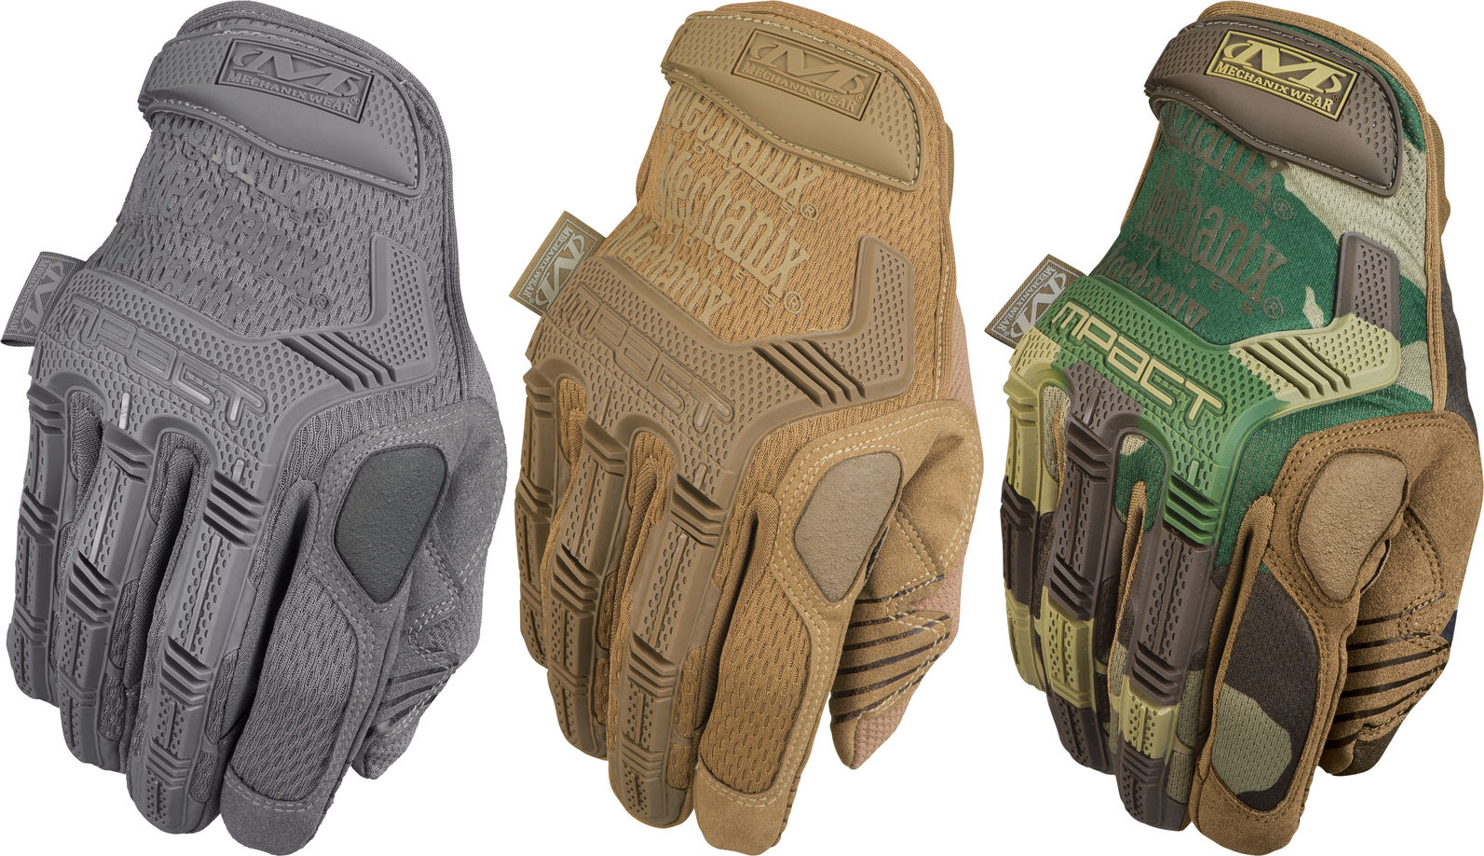 Leather work gloves m pact 2 - Mechanix M Pact Glove